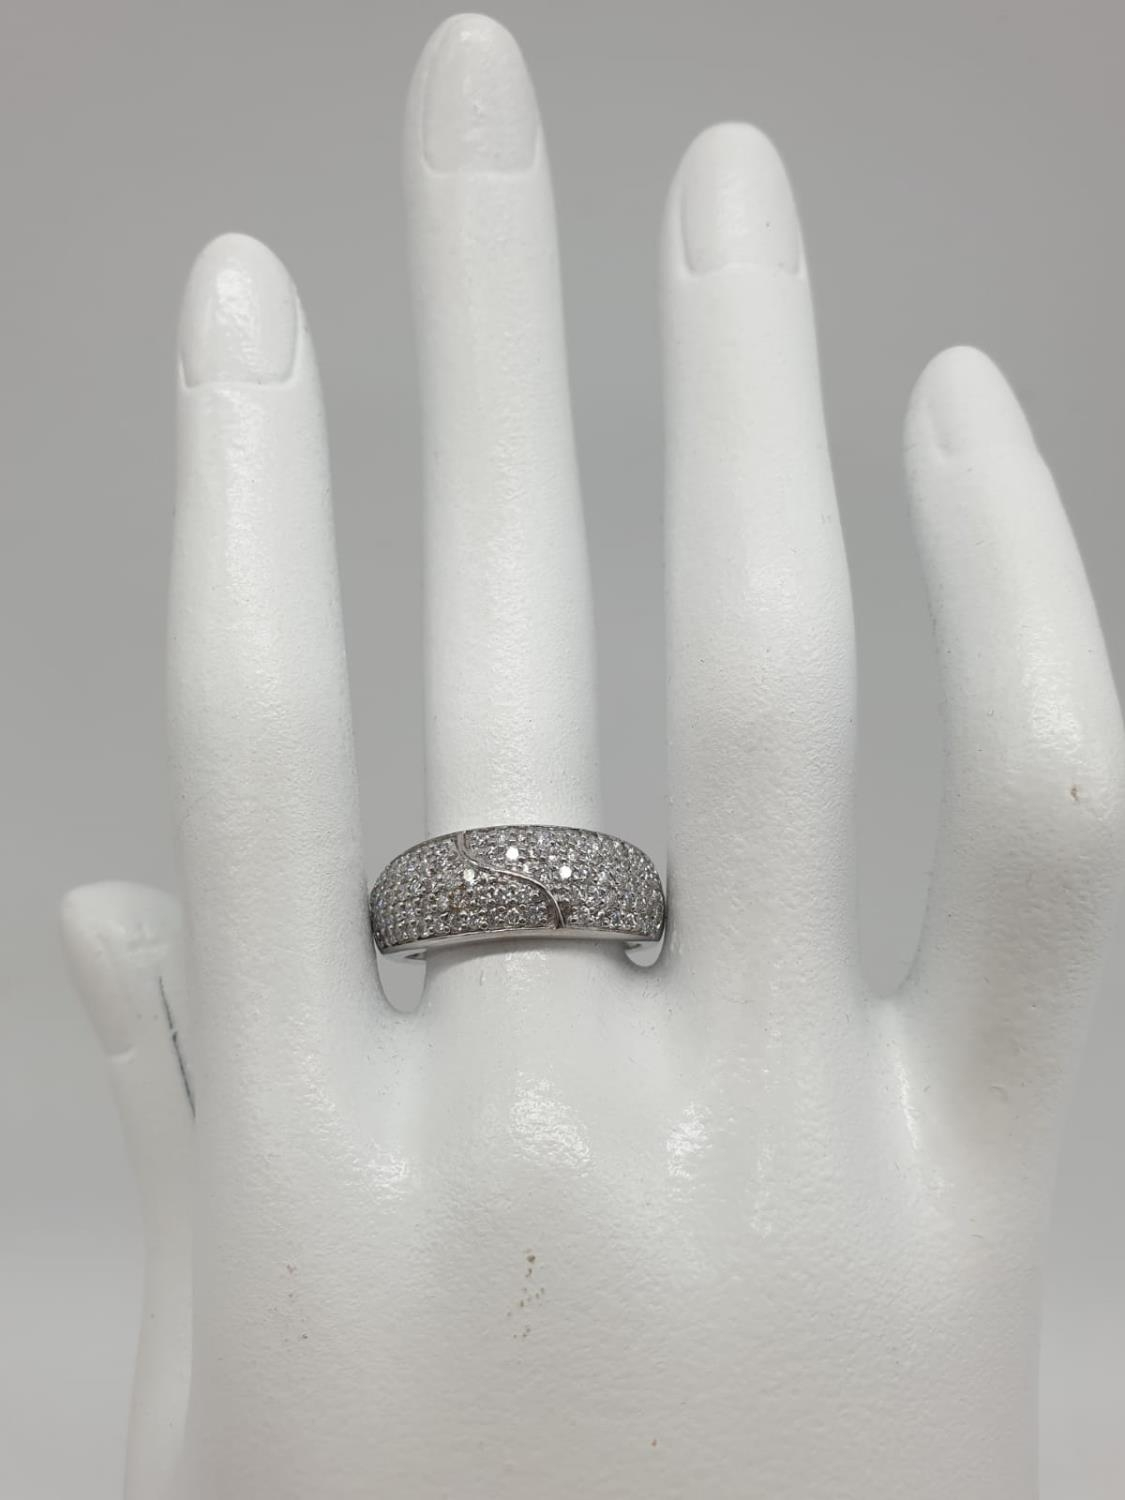 18ct diamond encrusted stylist ring. Weighs 5.6g and is a size O. - Image 7 of 7